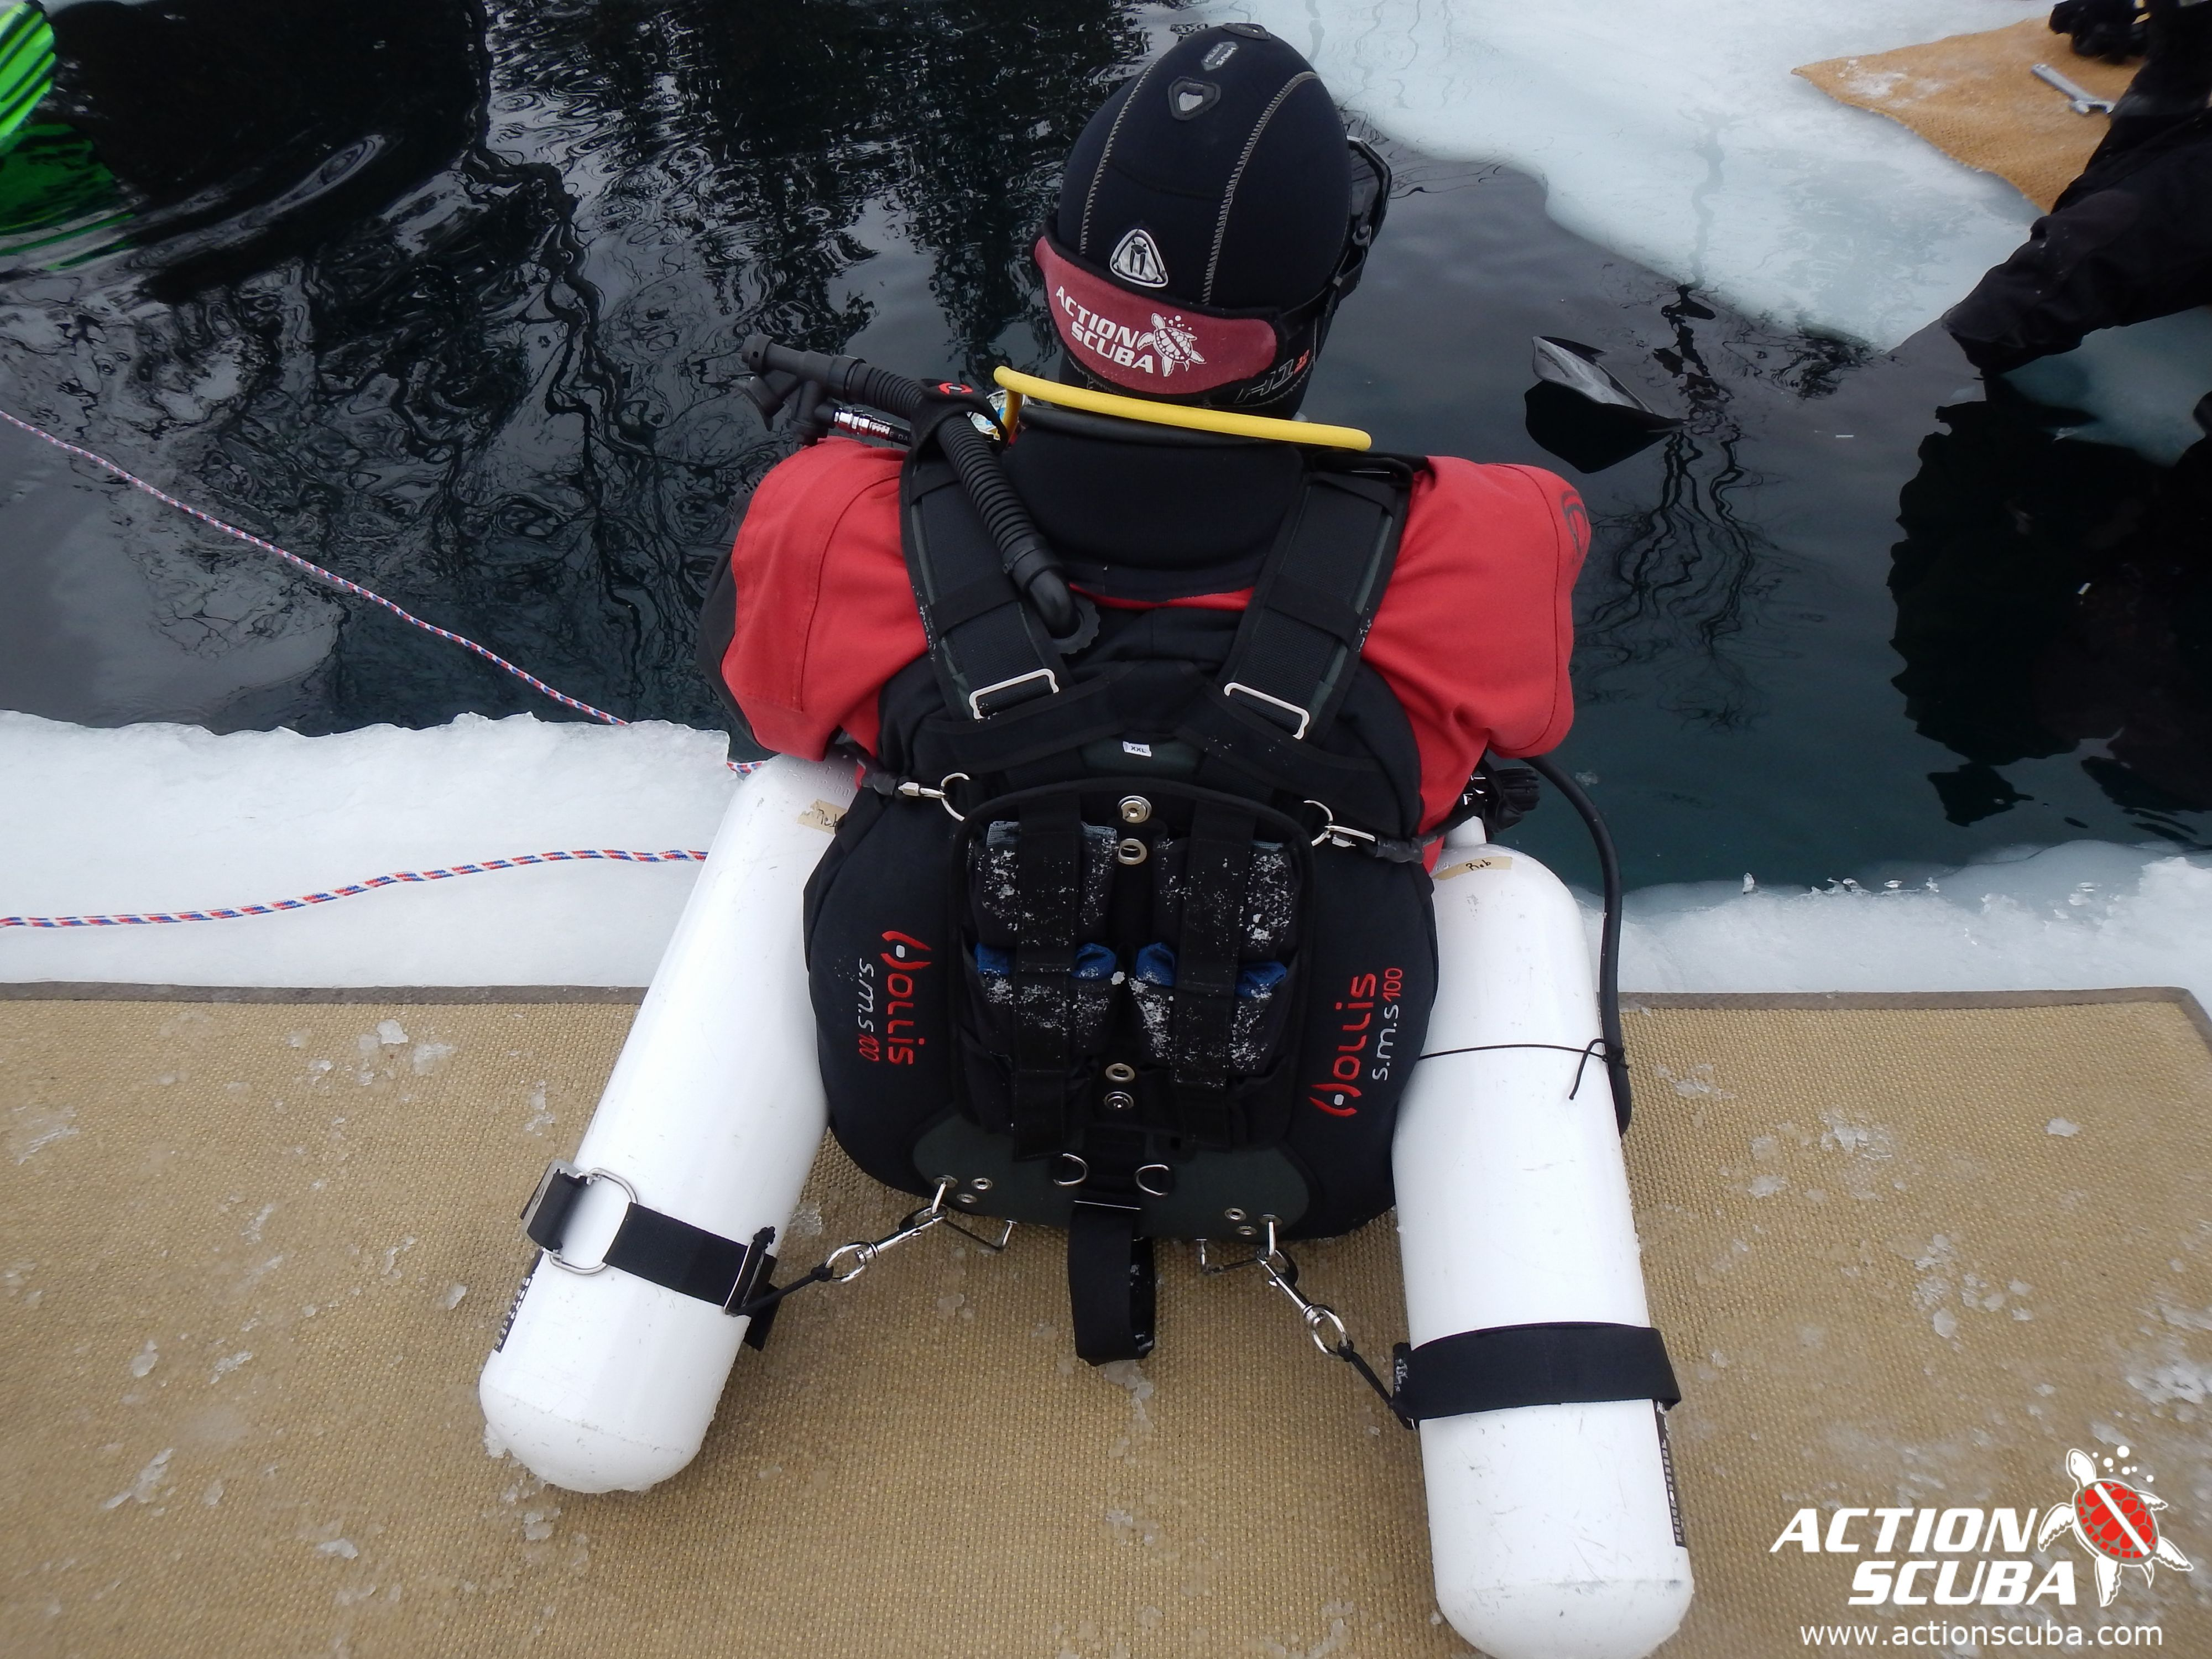 Sidemount scuba diving with Action Scuba Montreal